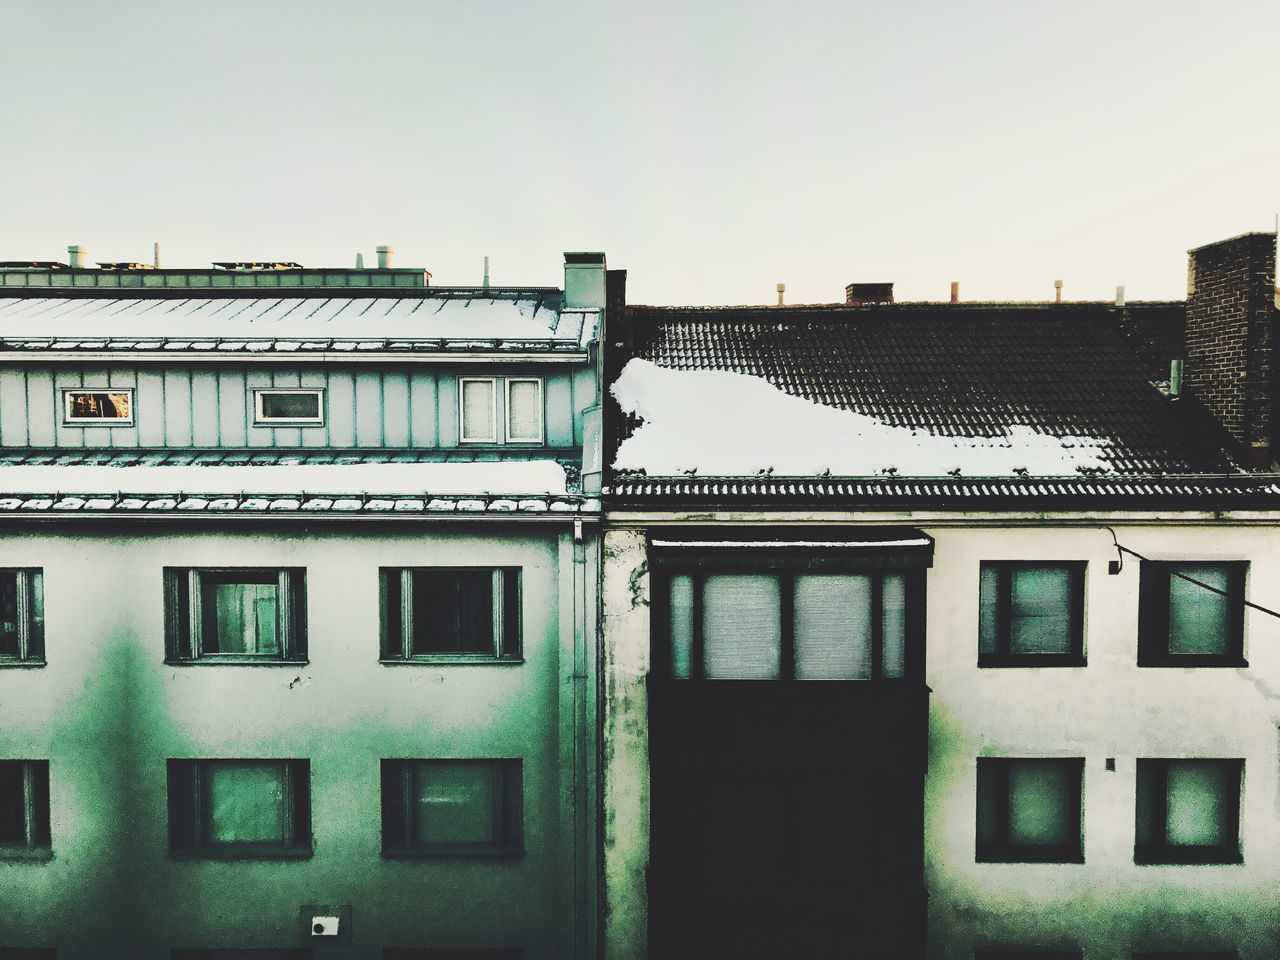 building exterior, window, architecture, built structure, no people, house, day, residential building, outdoors, sky